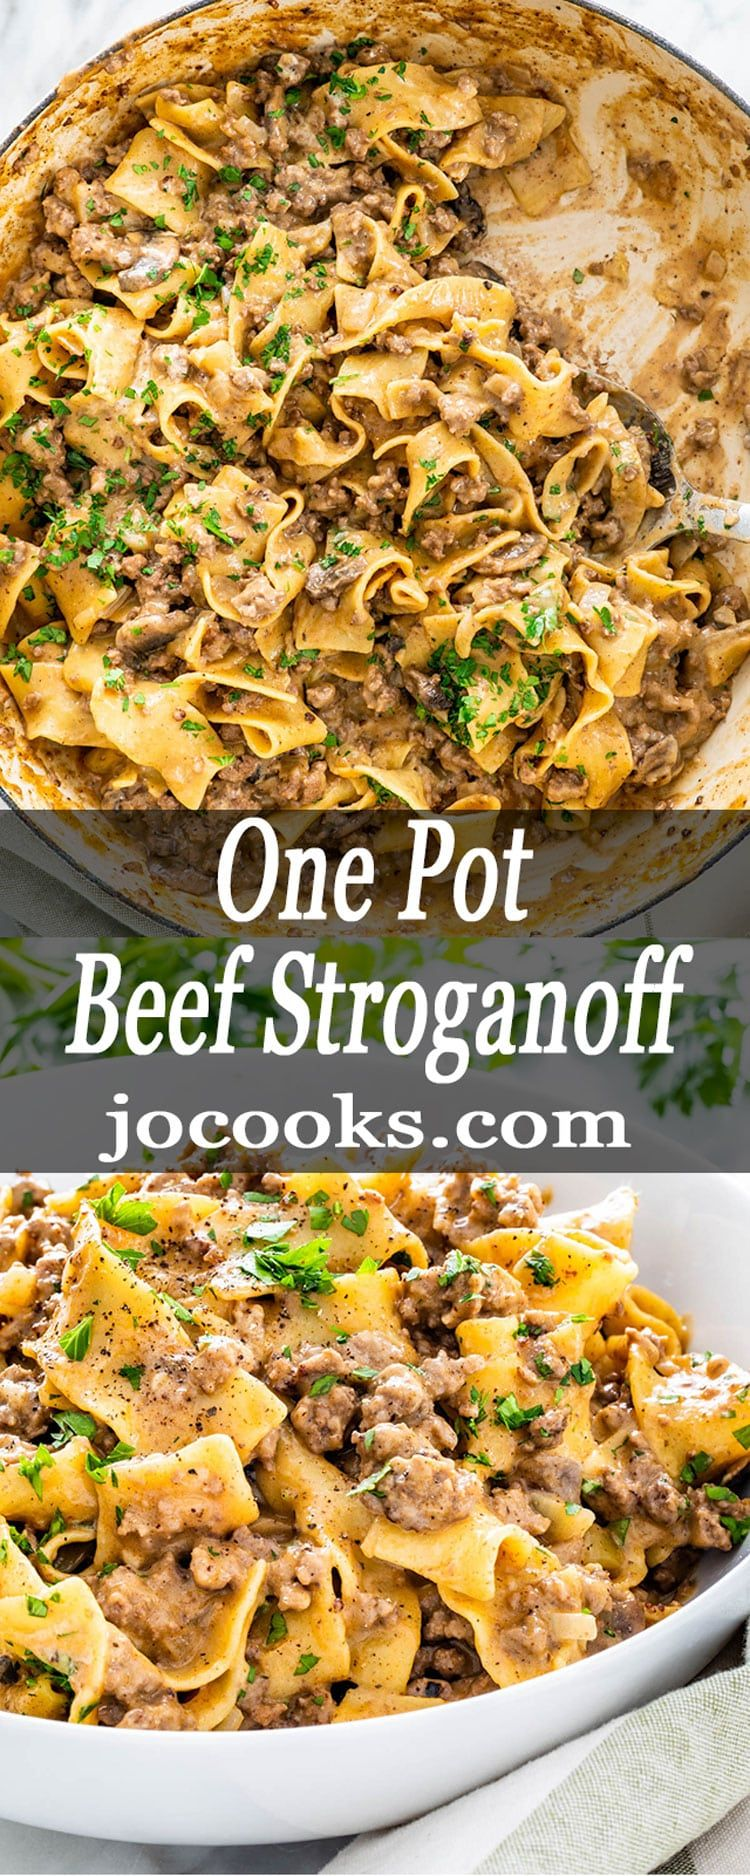 One Pot Beef Stroganoff is a simple weeknight meal. With mushrooms and beef in a creamy rich sauce with egg noodles, this dreamy dish is packed full of flavor and yumminess. #beefstroganoff #onepot #easyonepotmeals